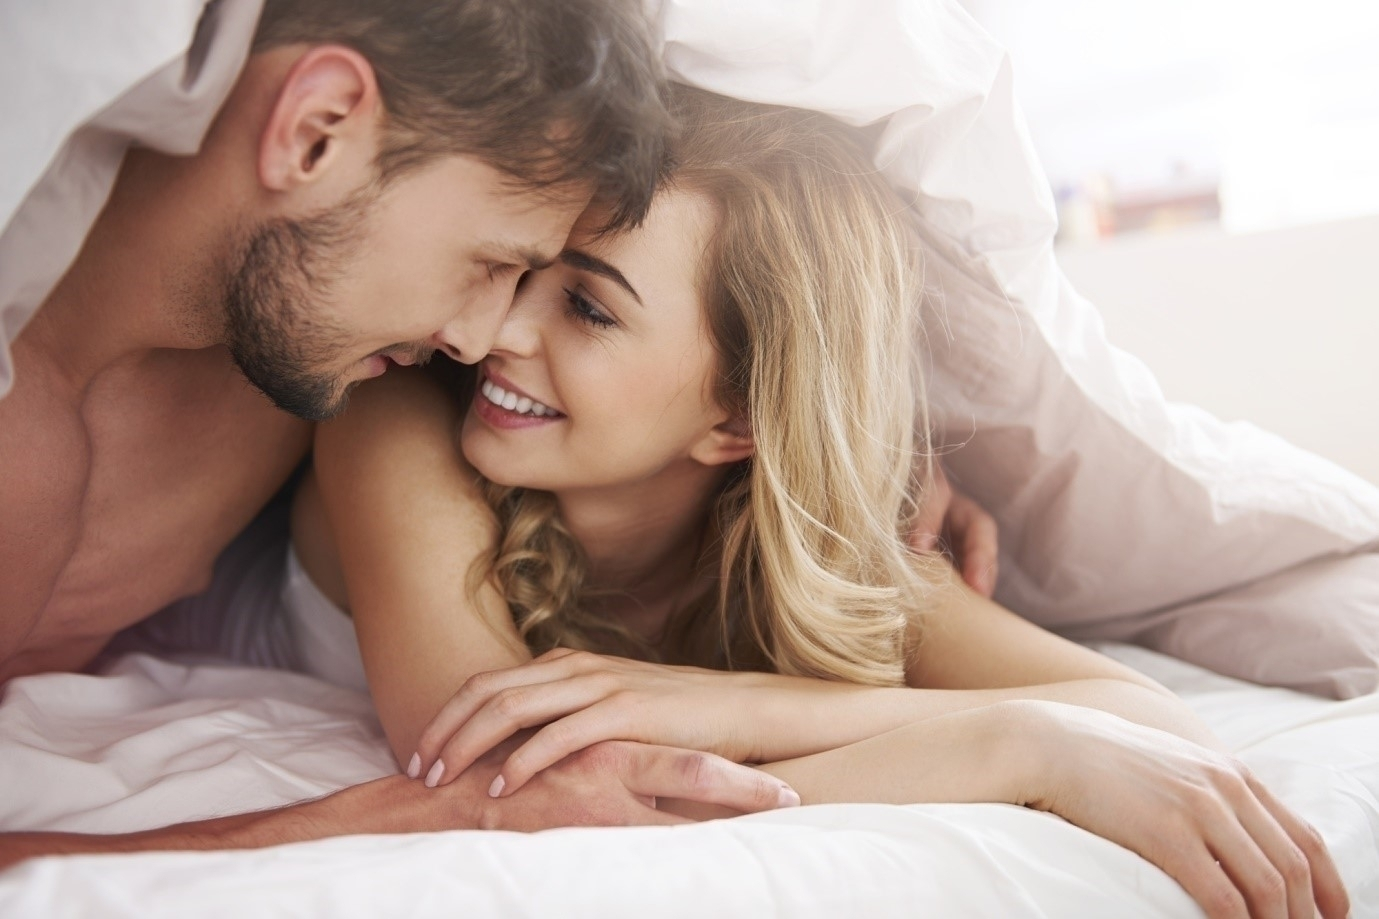 The Flame Is Out: Here's How To Get The Sexual Spark Back Into Your